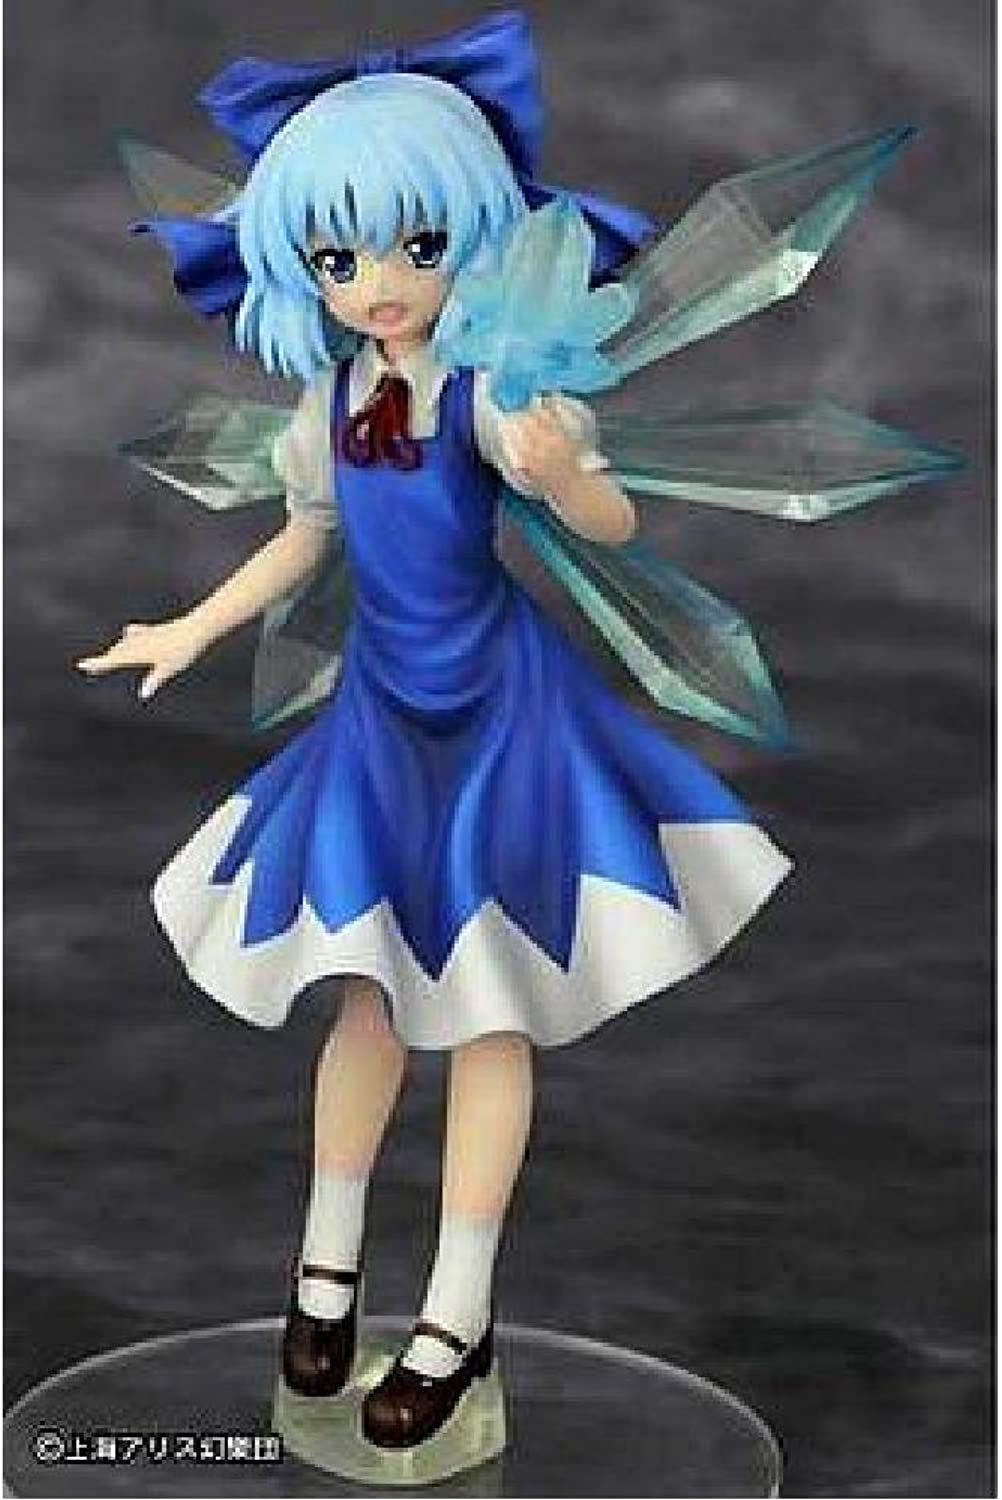 Ice accuracy of Cirno Touhou Project lake